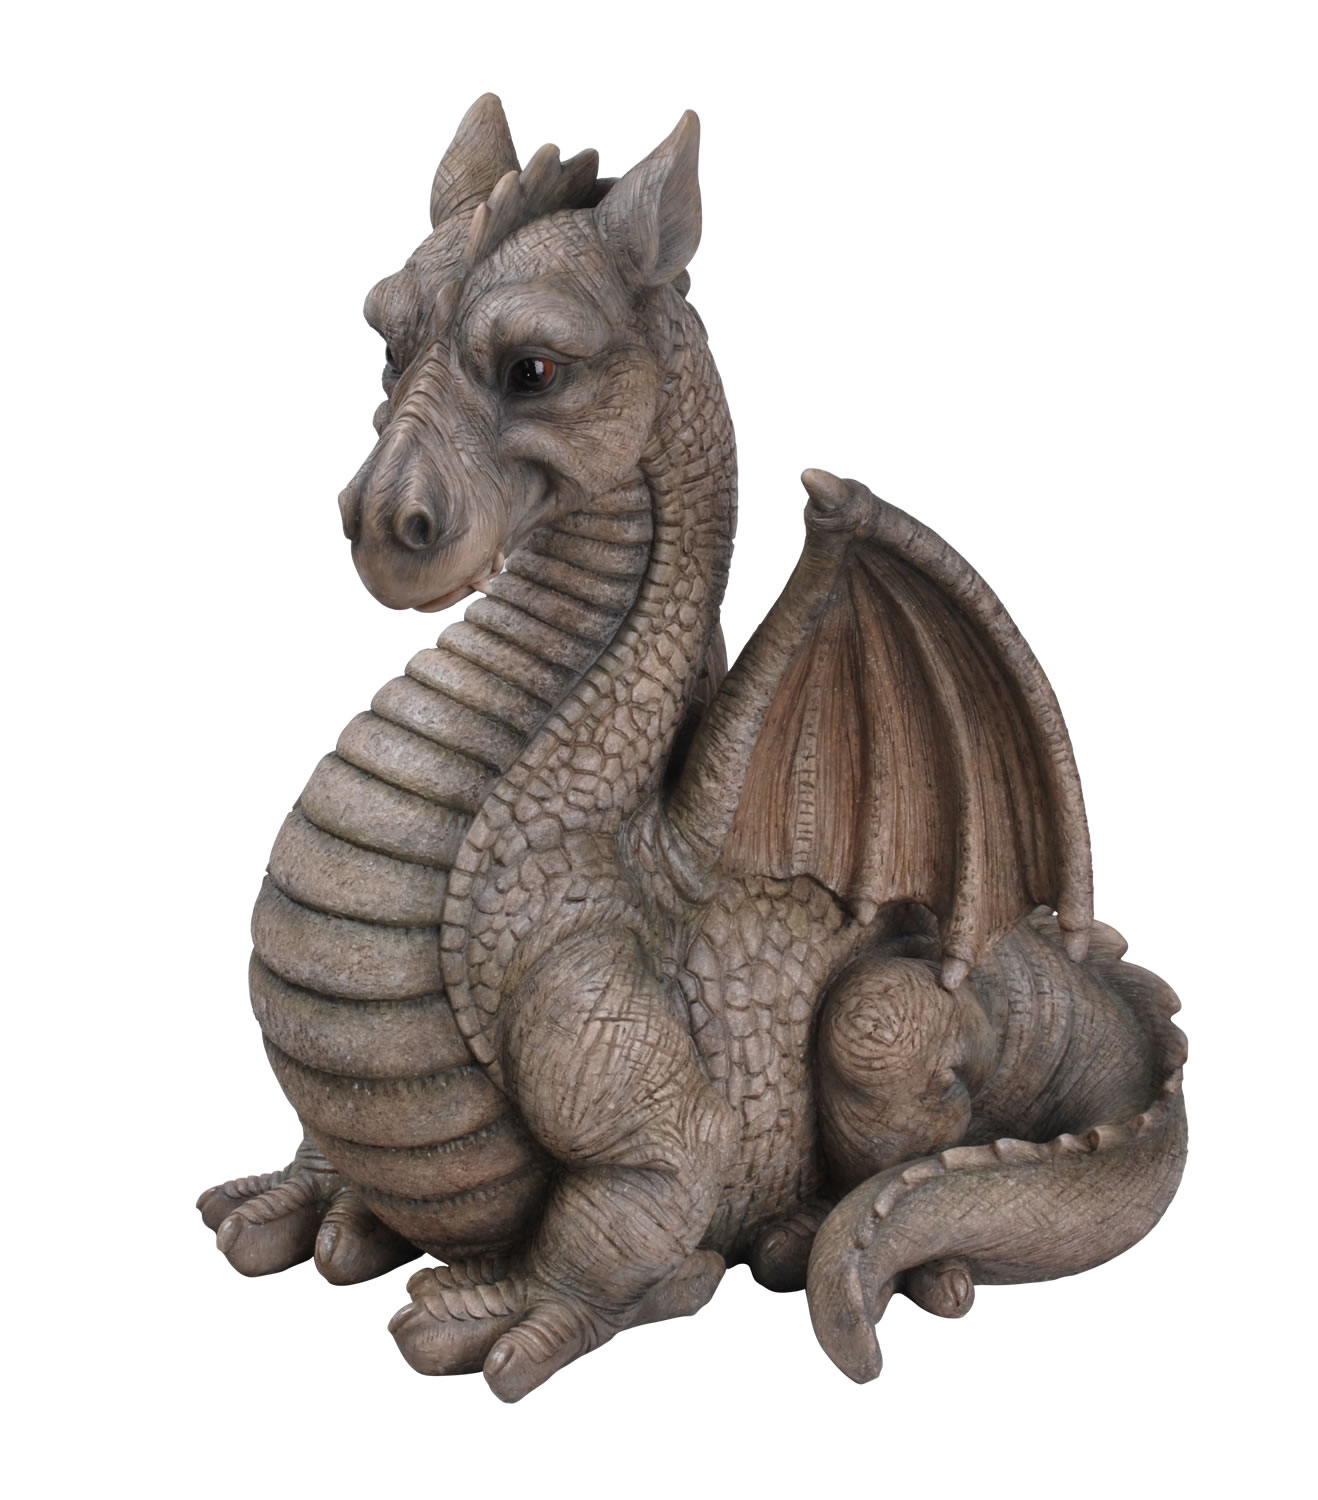 Grey Winged Dragon Resin Garden Ornament 163 89 99